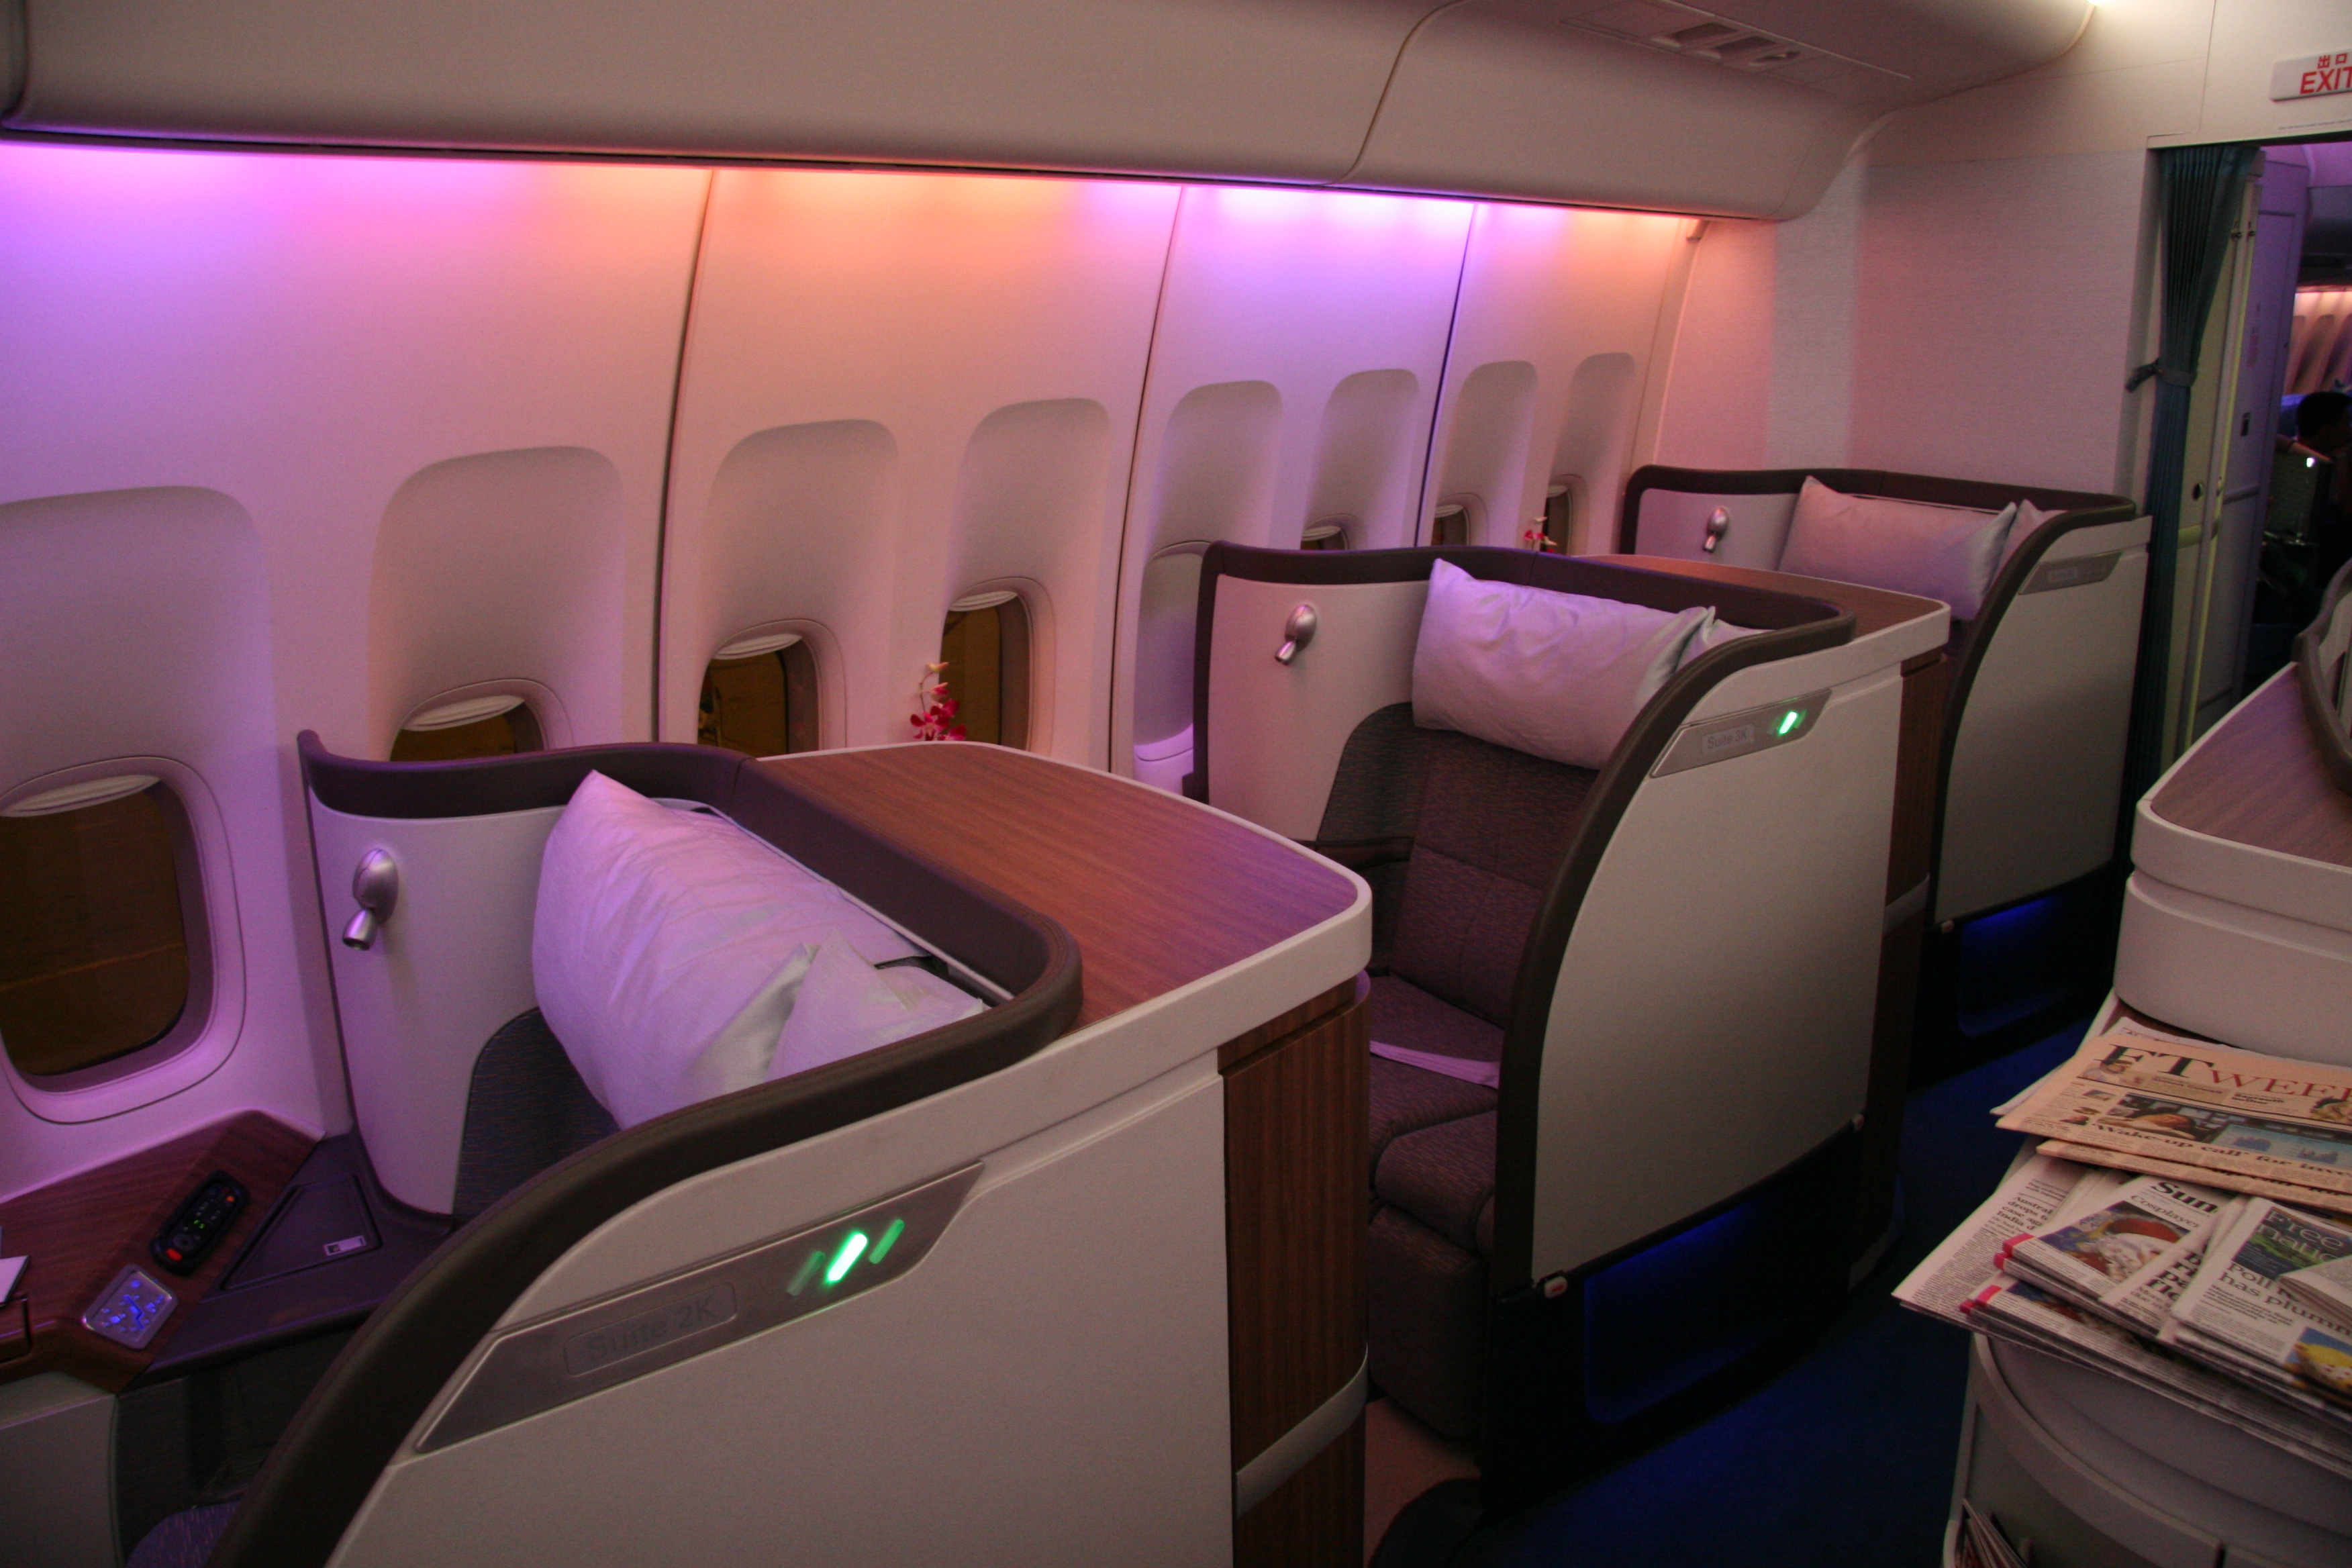 Google images for First class suite airline